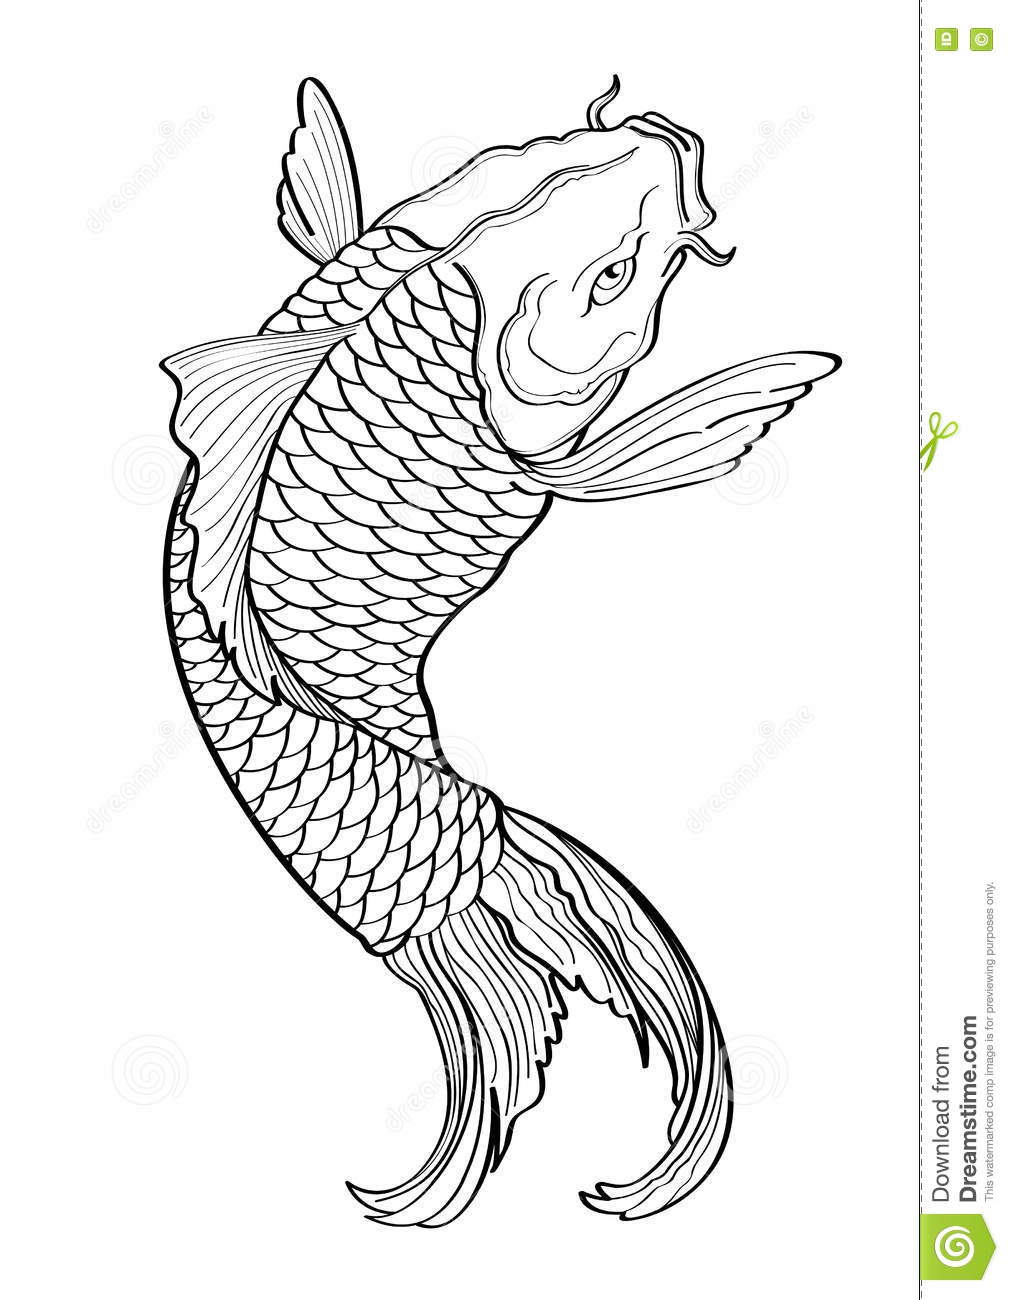 Free Japanese Koi Fish Tattoo Designs